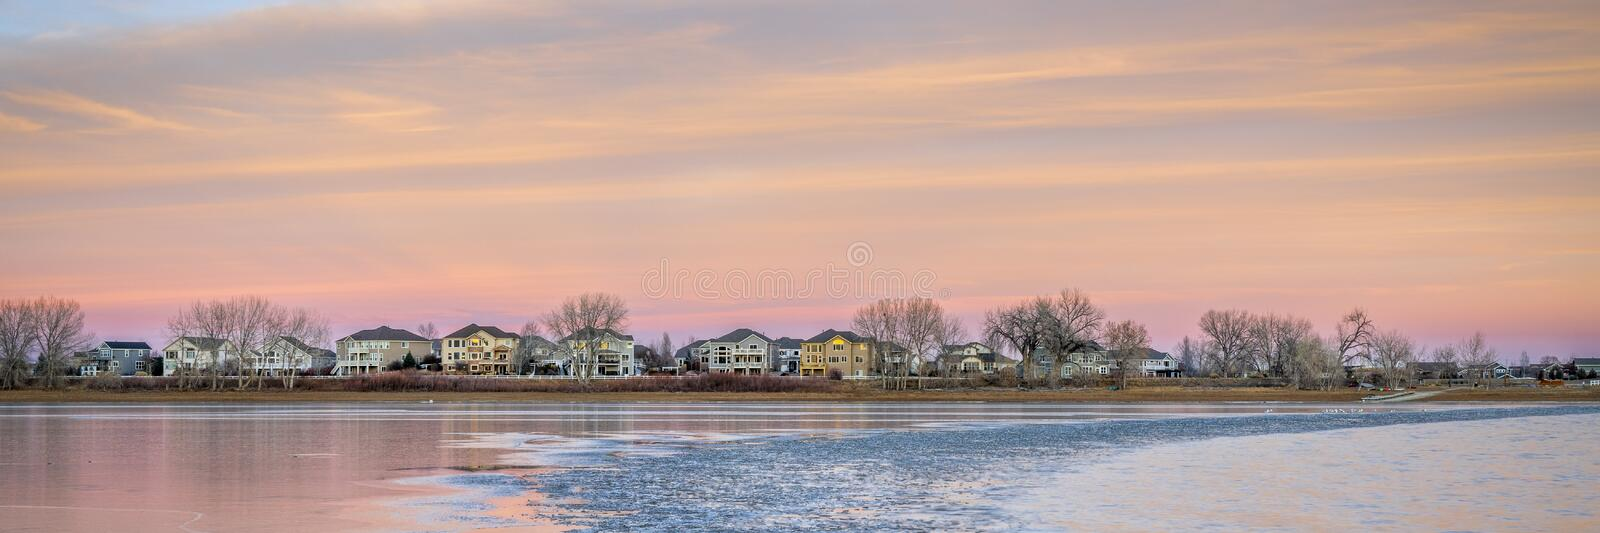 Freezing lake after sunset. With houses at waterfront - Boyd Lake in northern Colorado, panoramic banner stock image